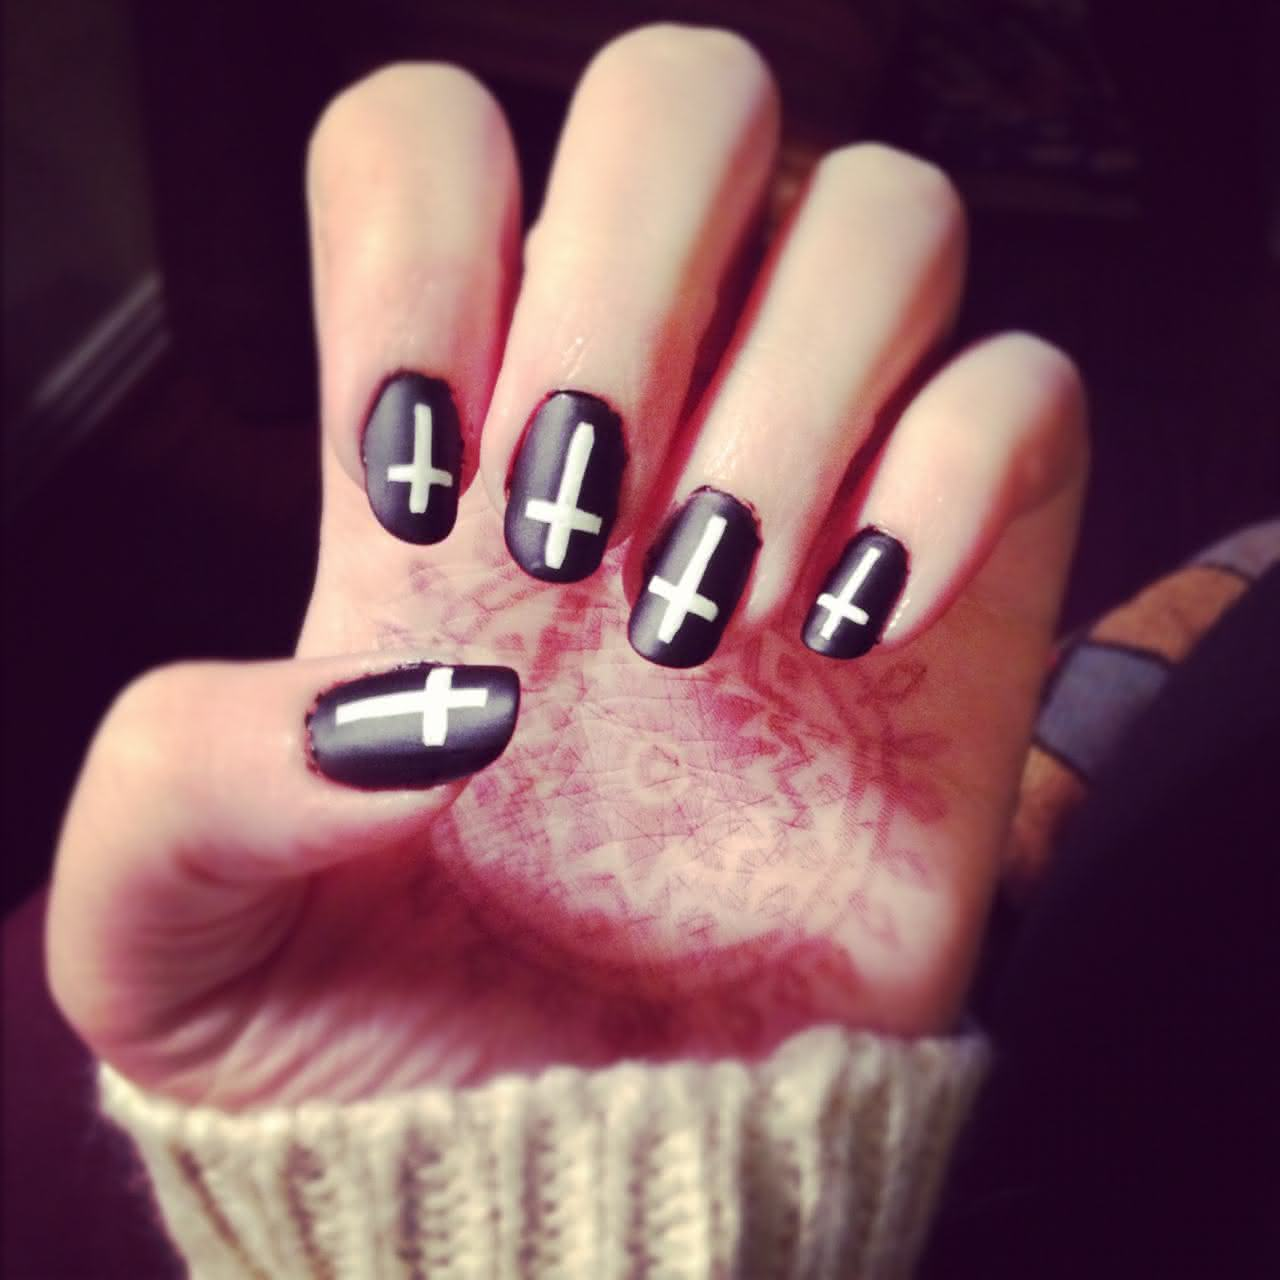 black-white-nail-designs-with-crosses_14970